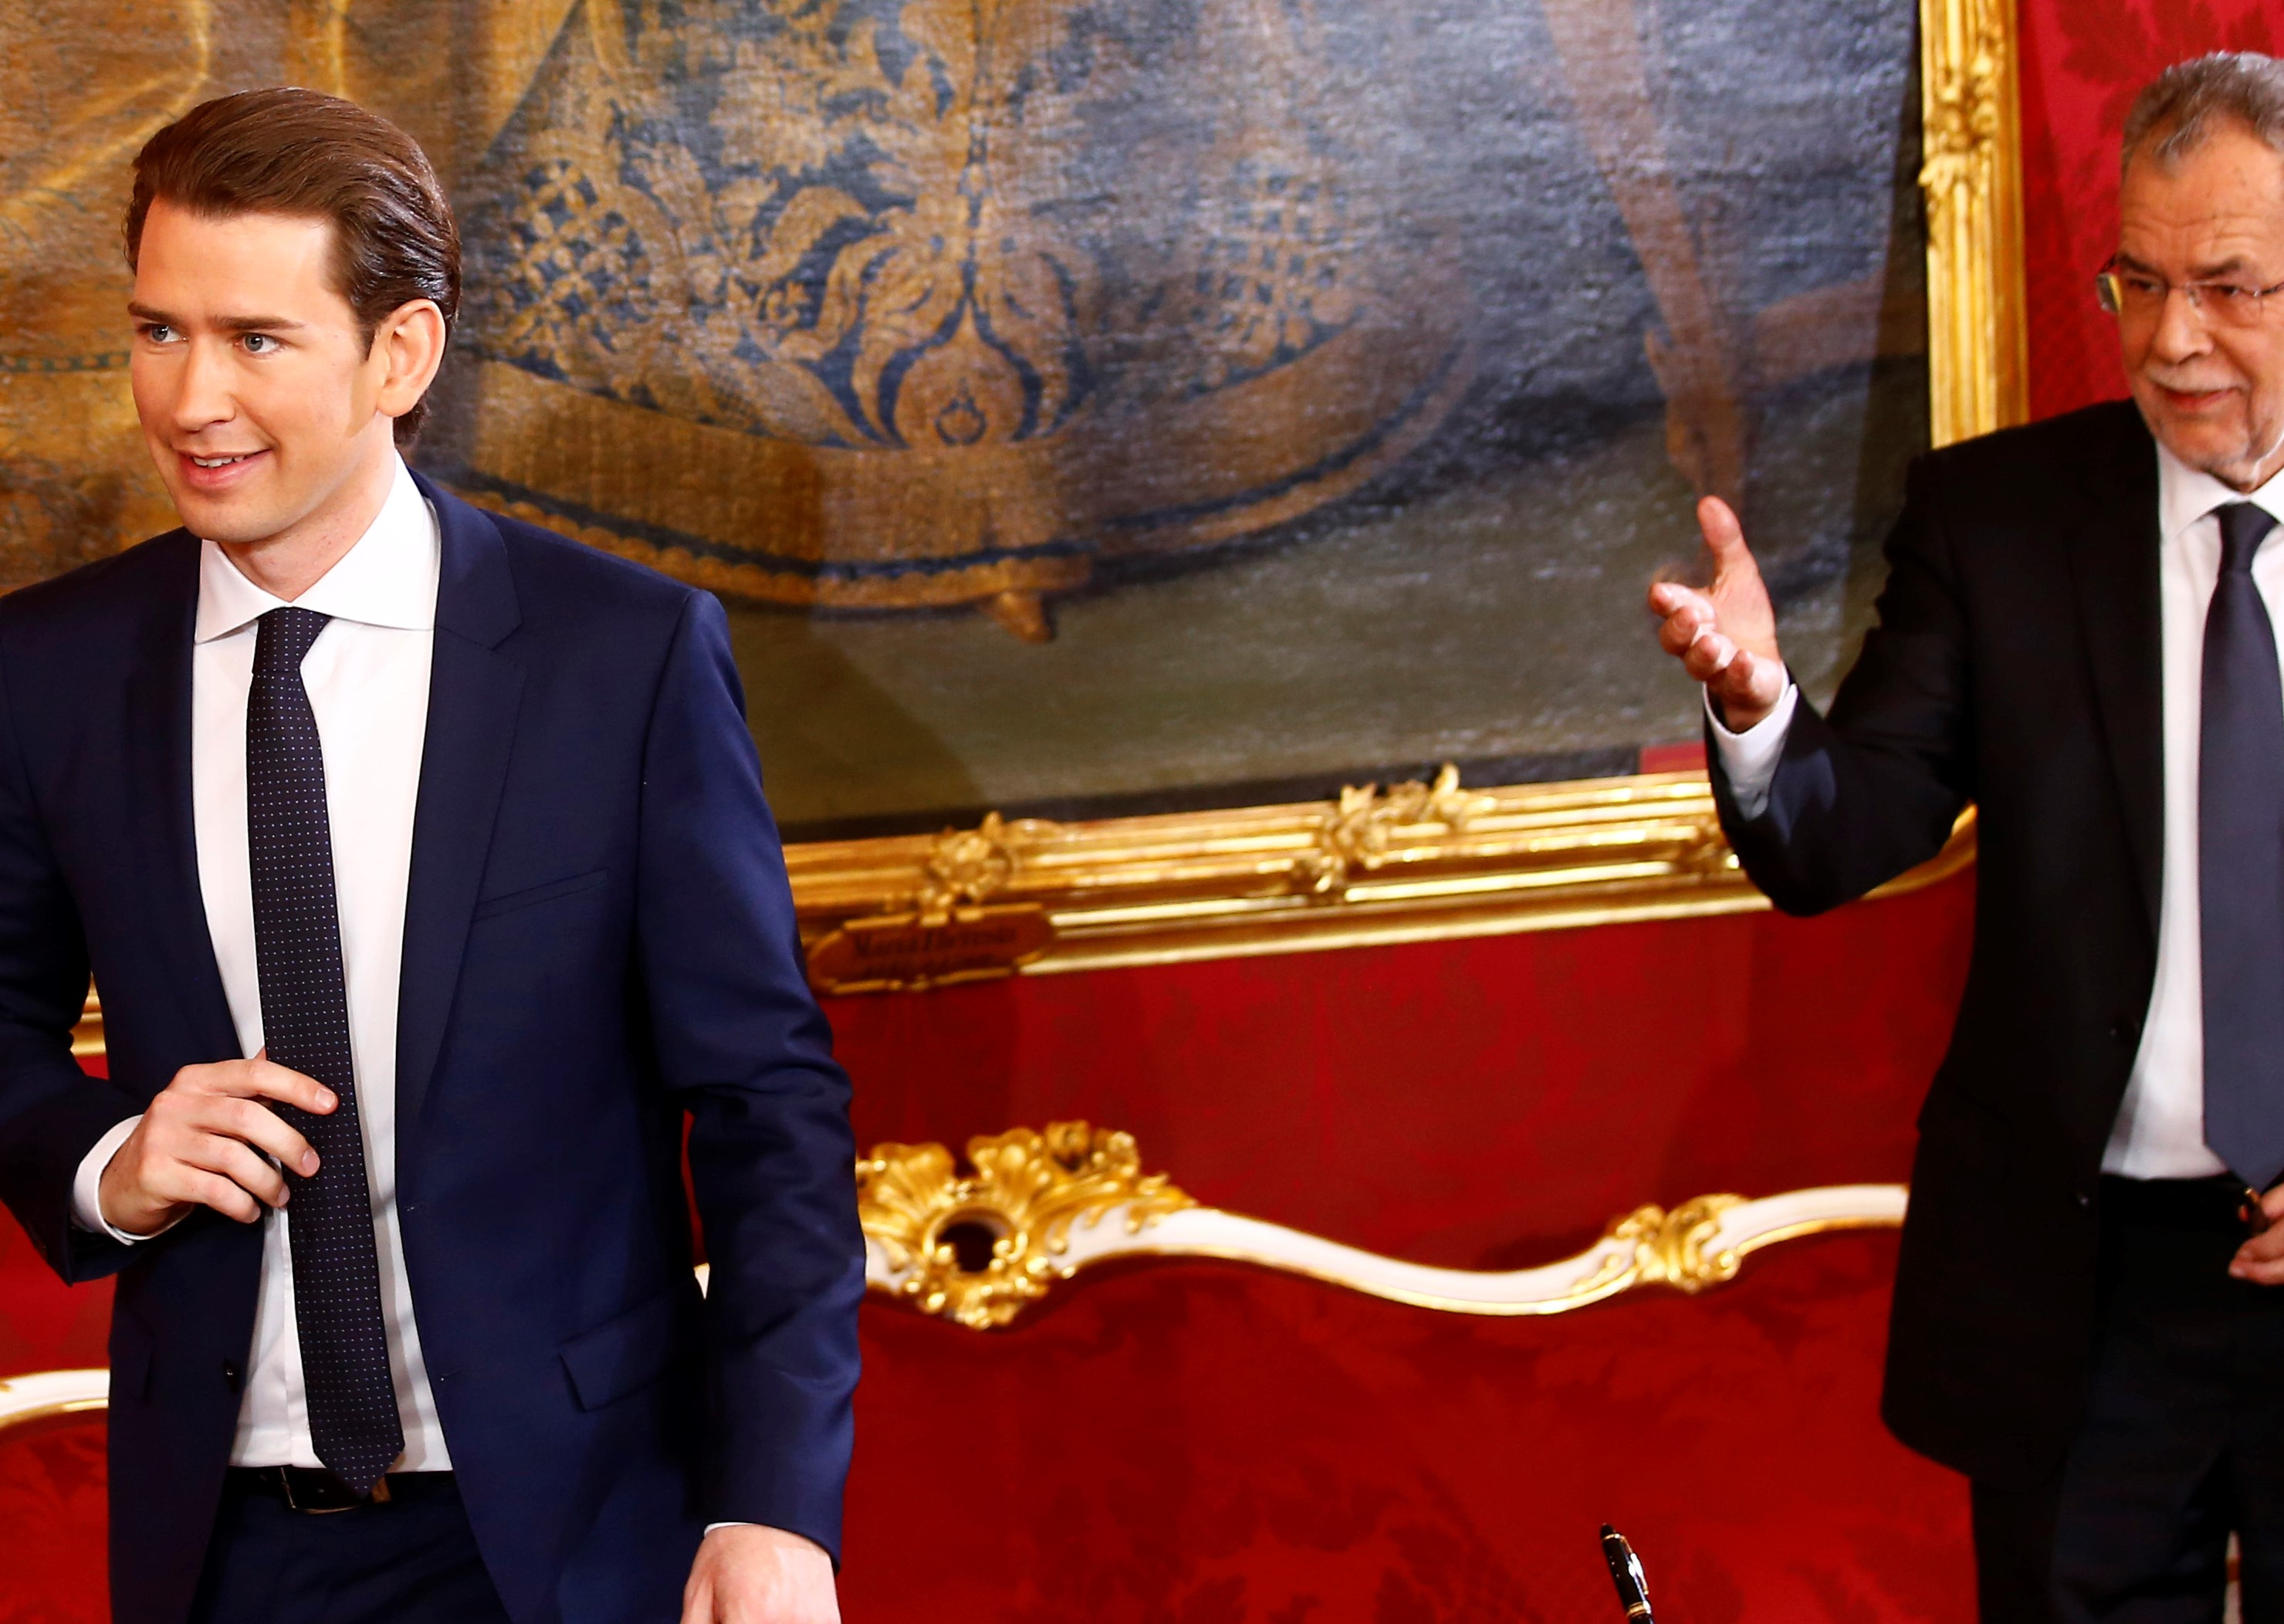 Newly-Elected Austrian Chancellor Says He Is 'Pro-European'